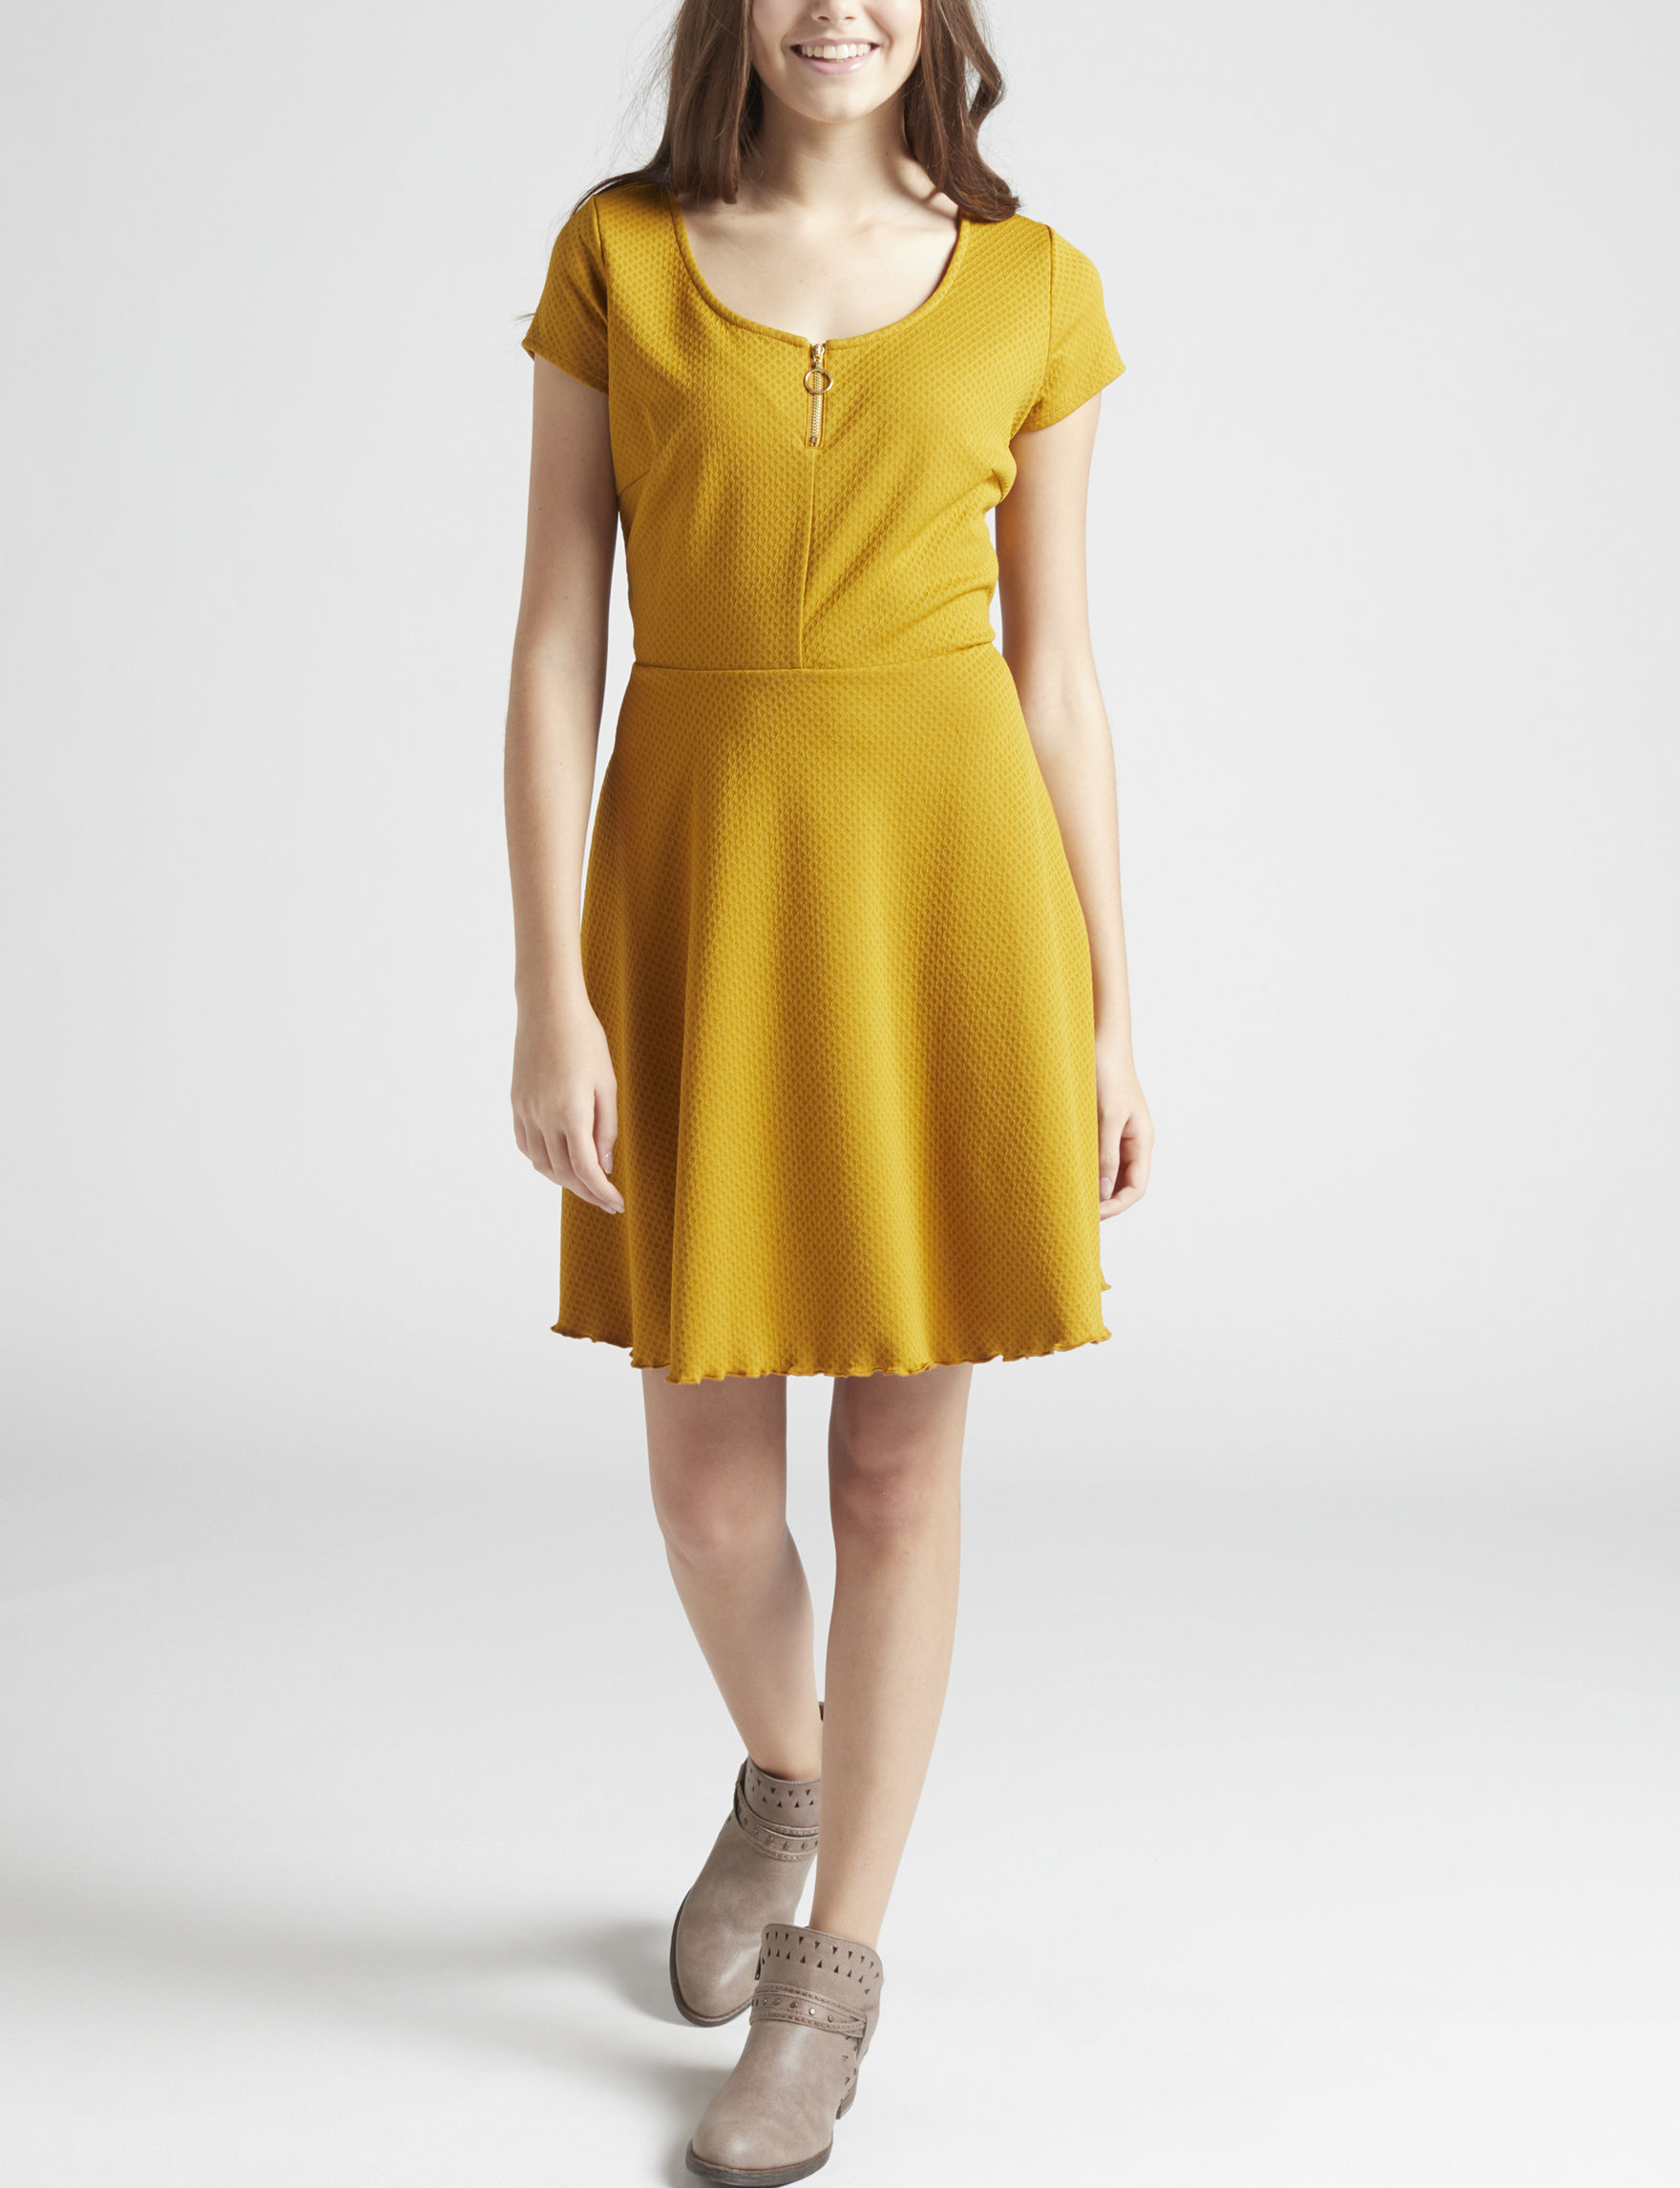 Sequin Hearts Mustard Everyday & Casual Fit & Flare Dresses